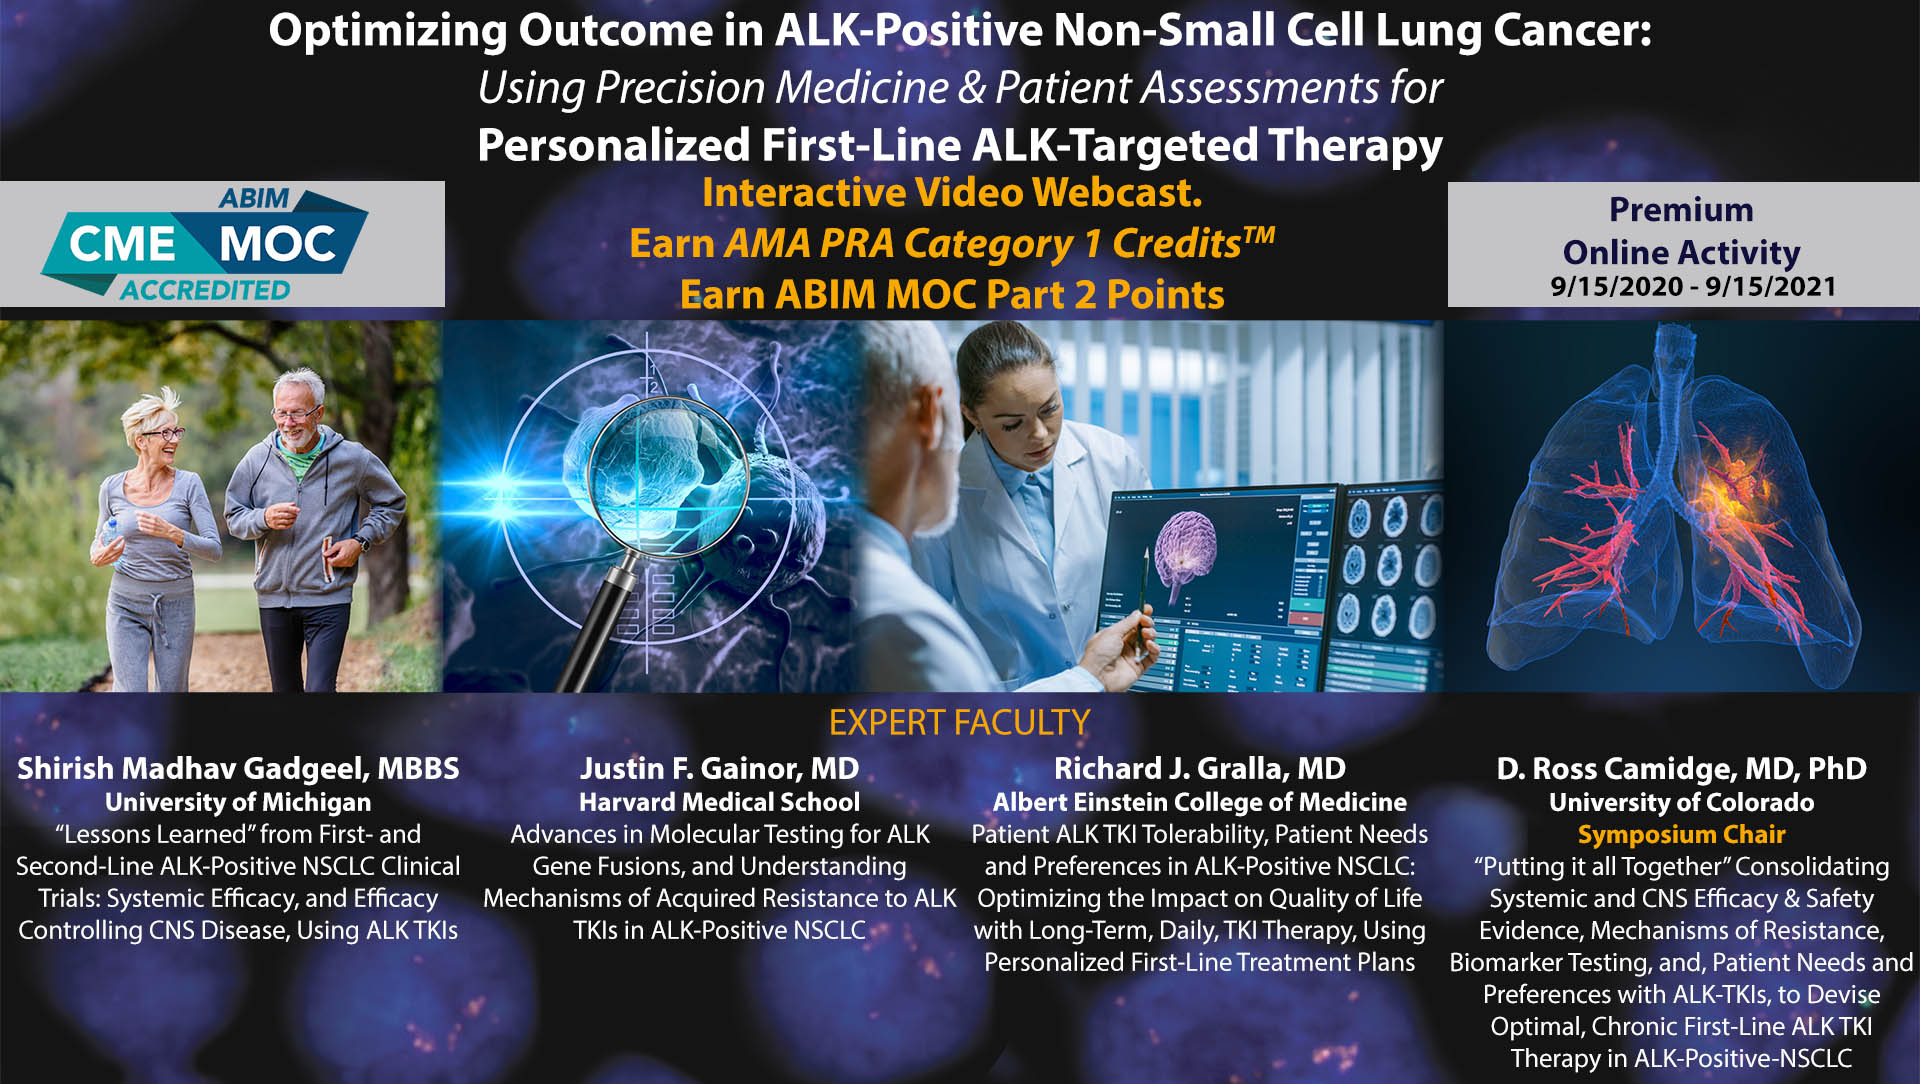 Optimizing Outcome in ALK-Positive Non-Small Cell Lung Cancer: Using Precision Medicine & Patient Assessments for Personalized First-Line ALK-Targeted Therapy